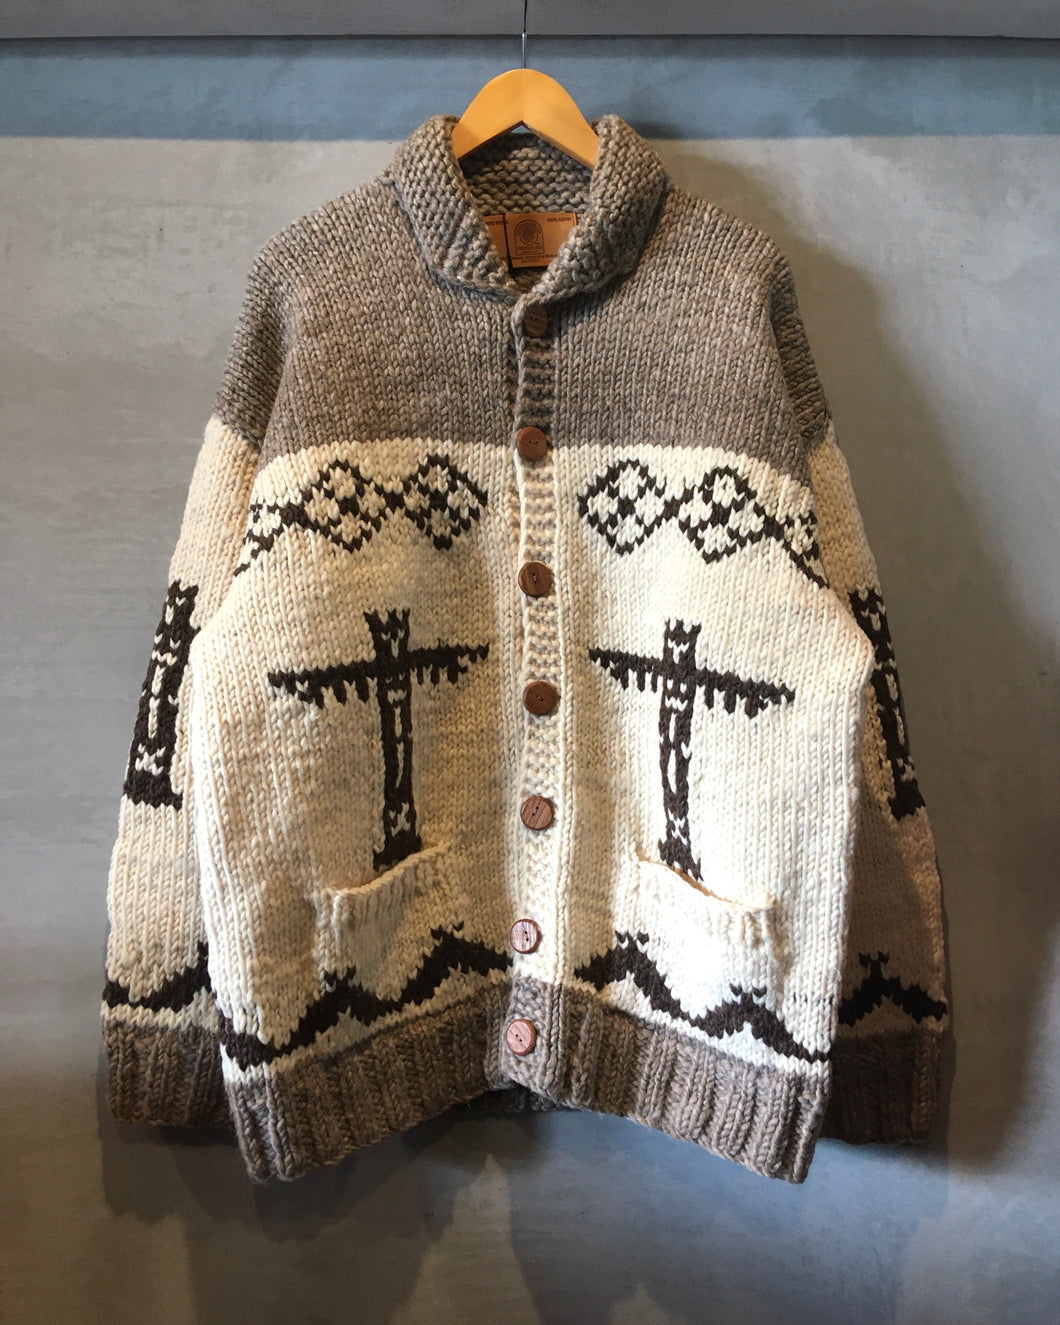 CANADIAN SWEATER COMPANY LTD.-Cowichan knit cardigan-Made in CANADA